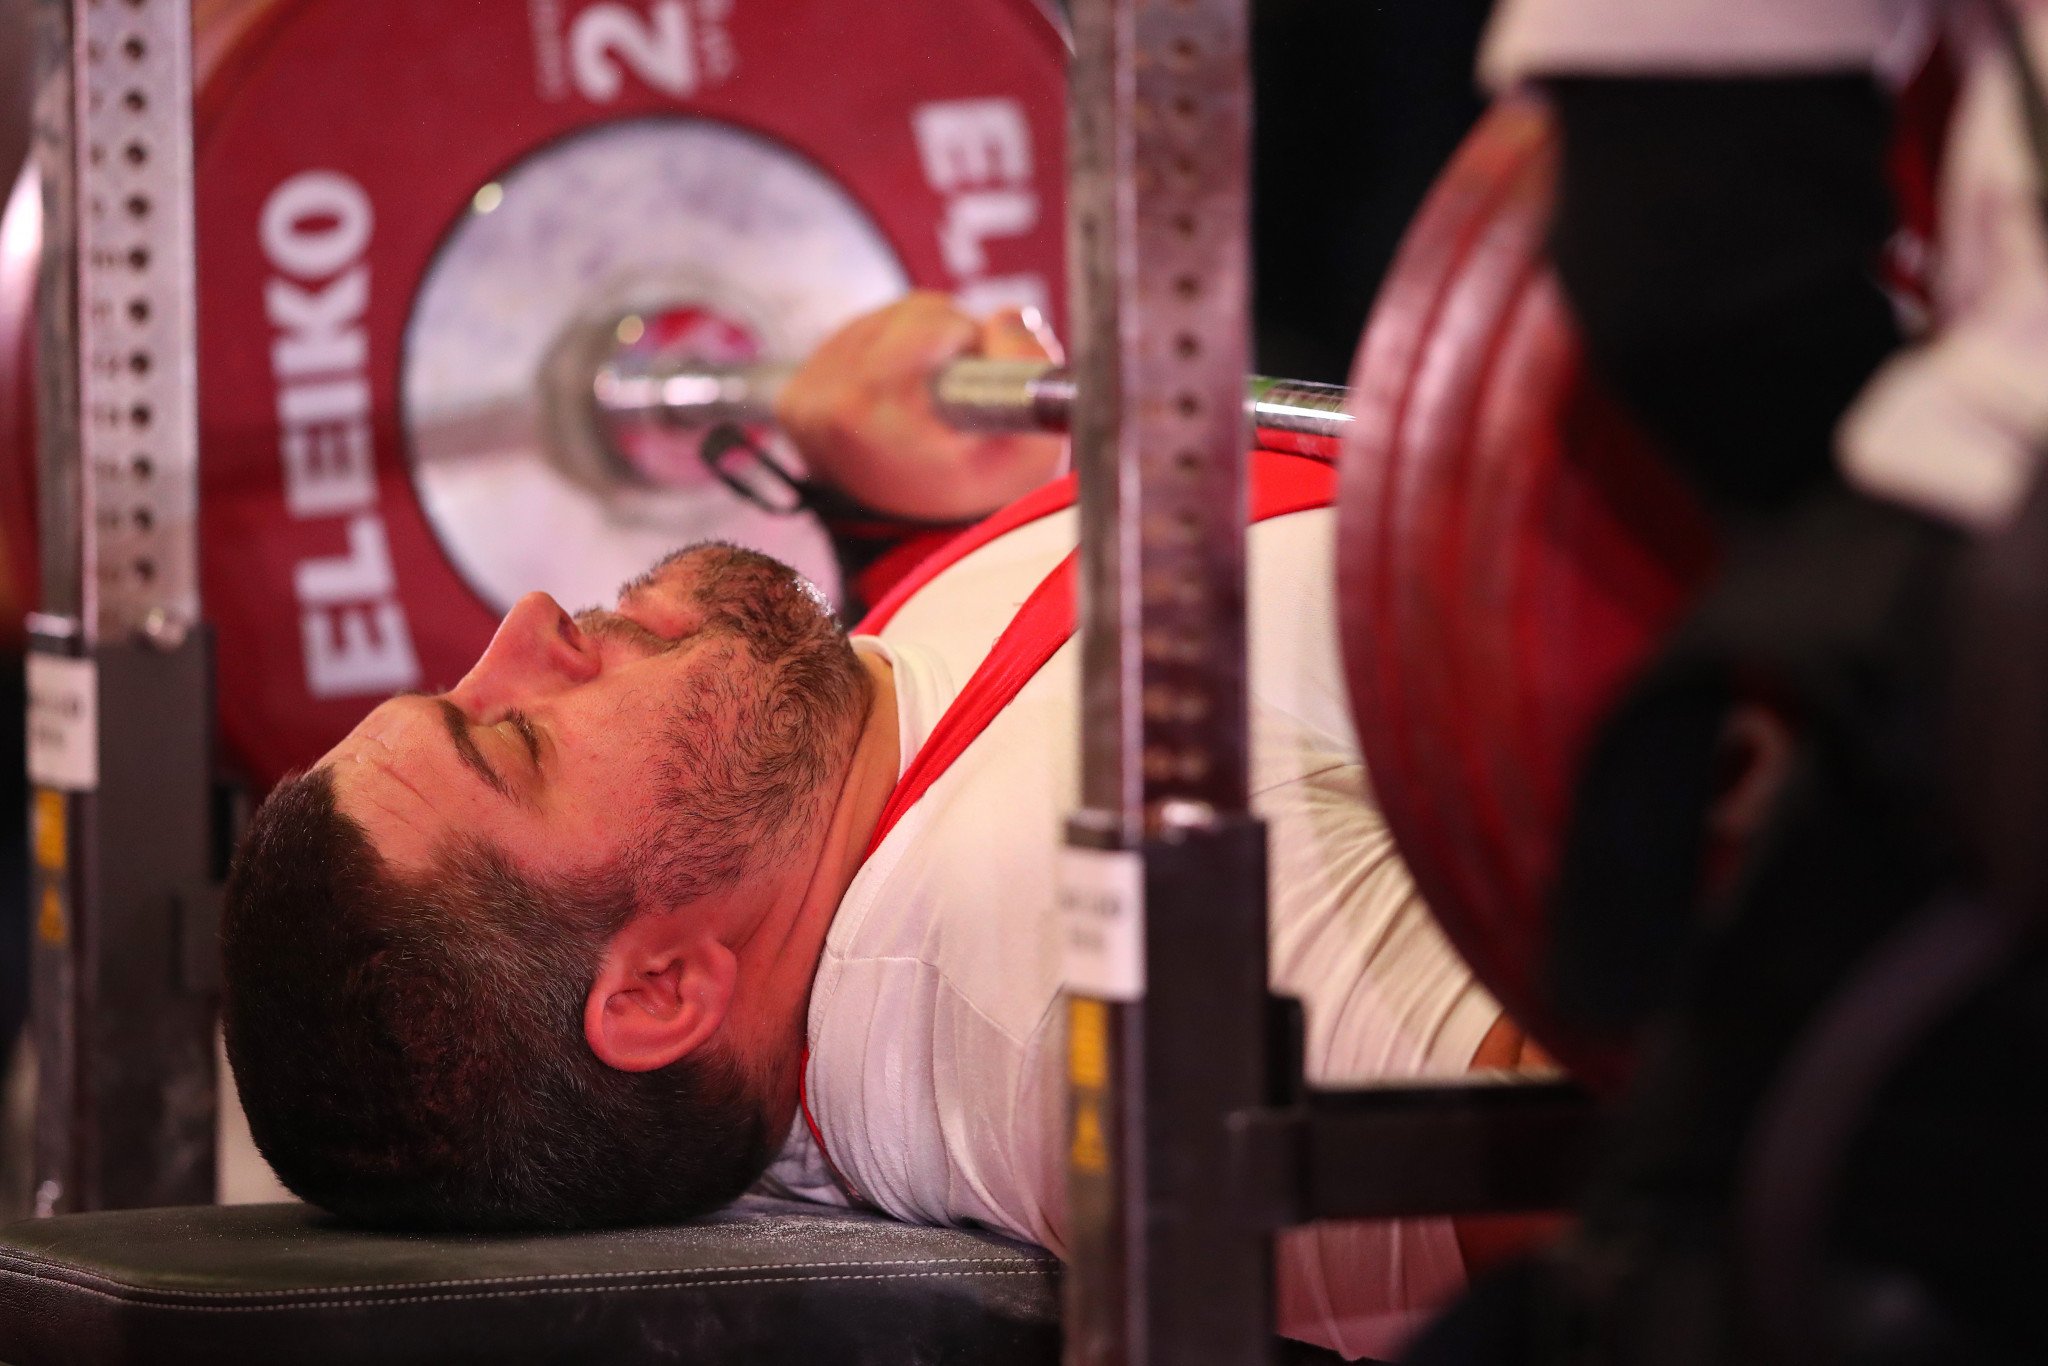 Powerlifting has introduced initiatives to keep the sport going amid the COVID-19 pandemic ©Getty Images